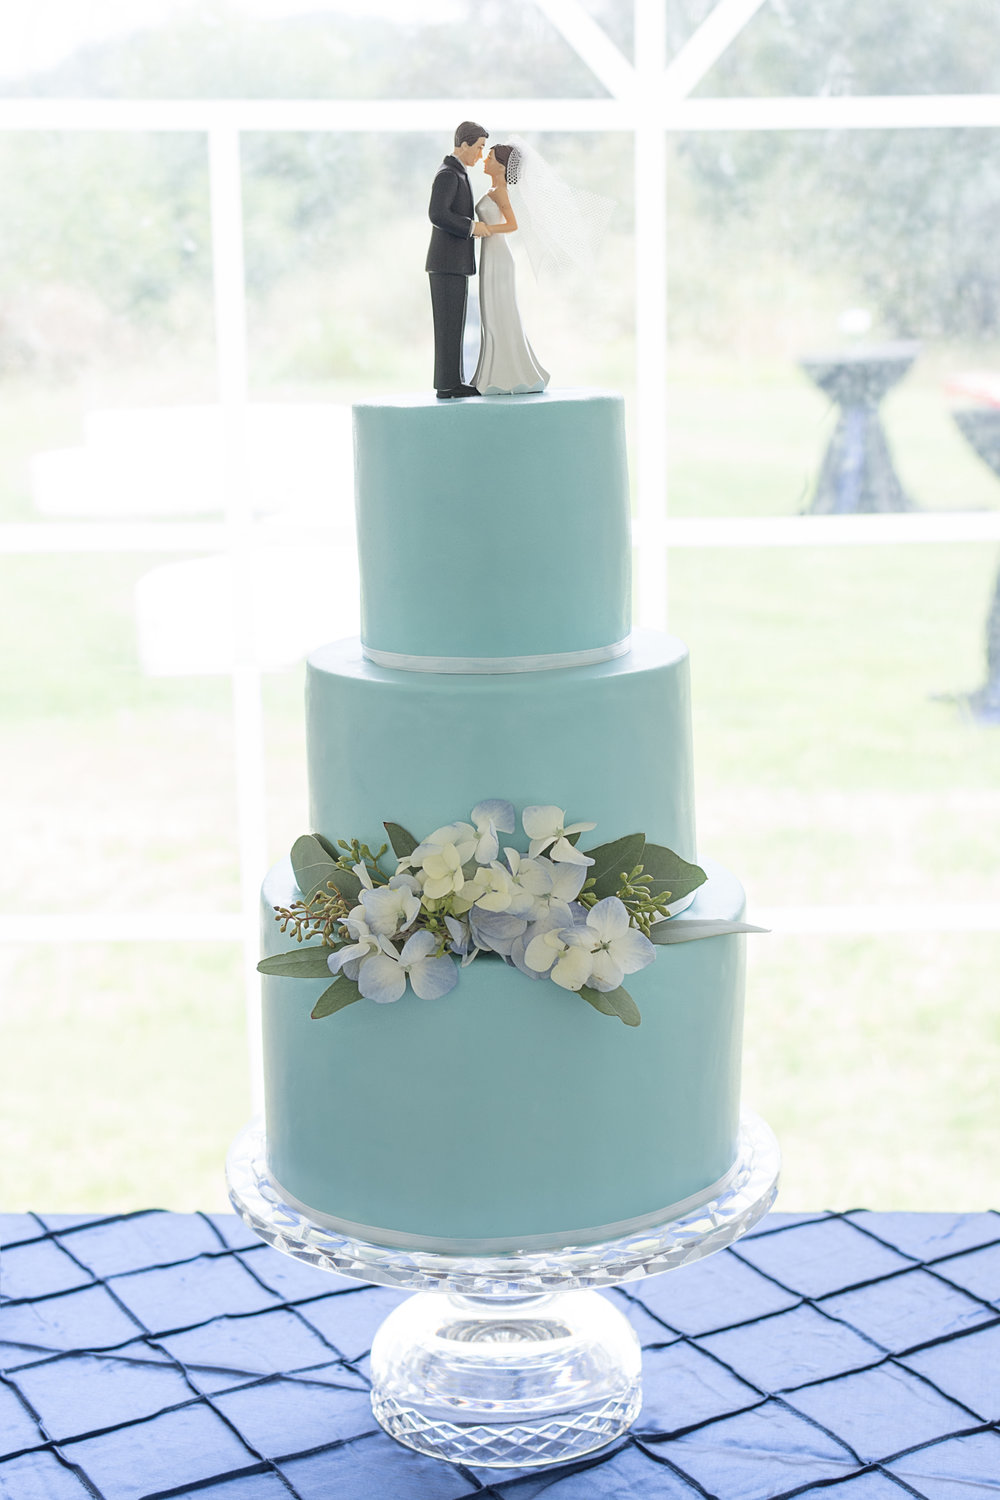 Blue Wedding Cake 9-2-17.jpg